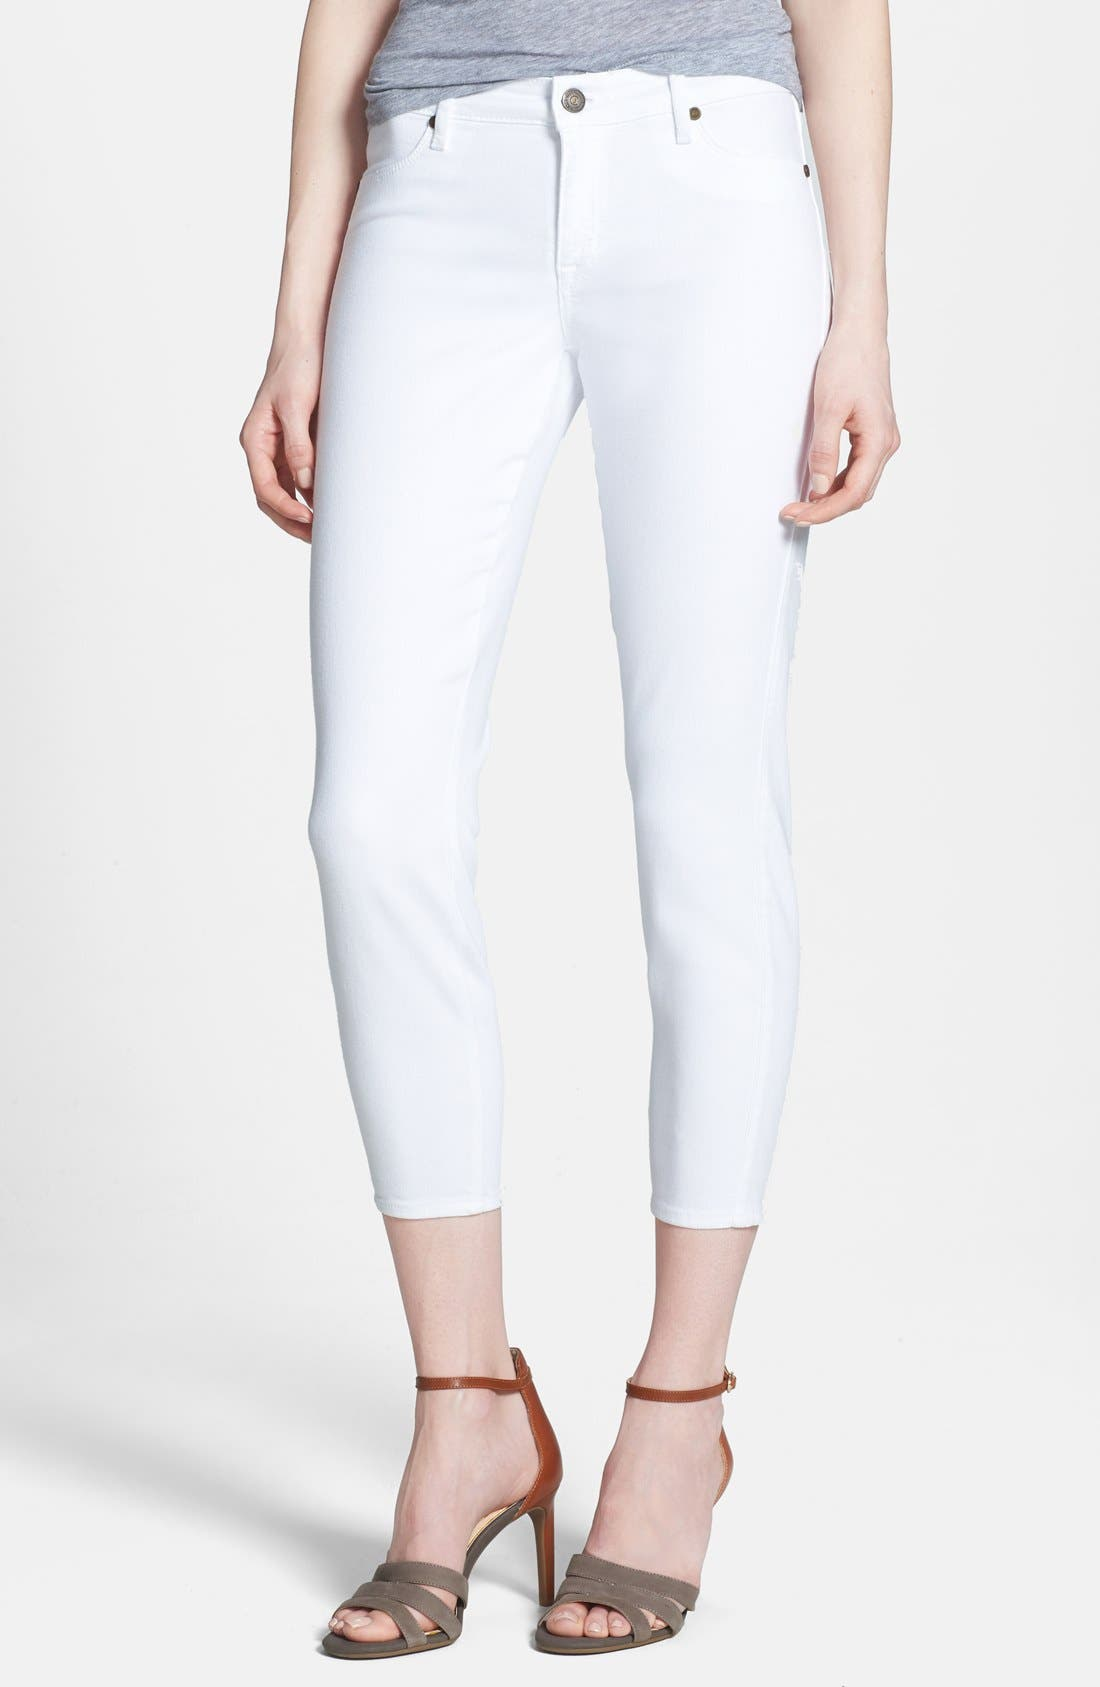 'Believe' Stretch Twill Crop Leggings,                         Main,                         color,